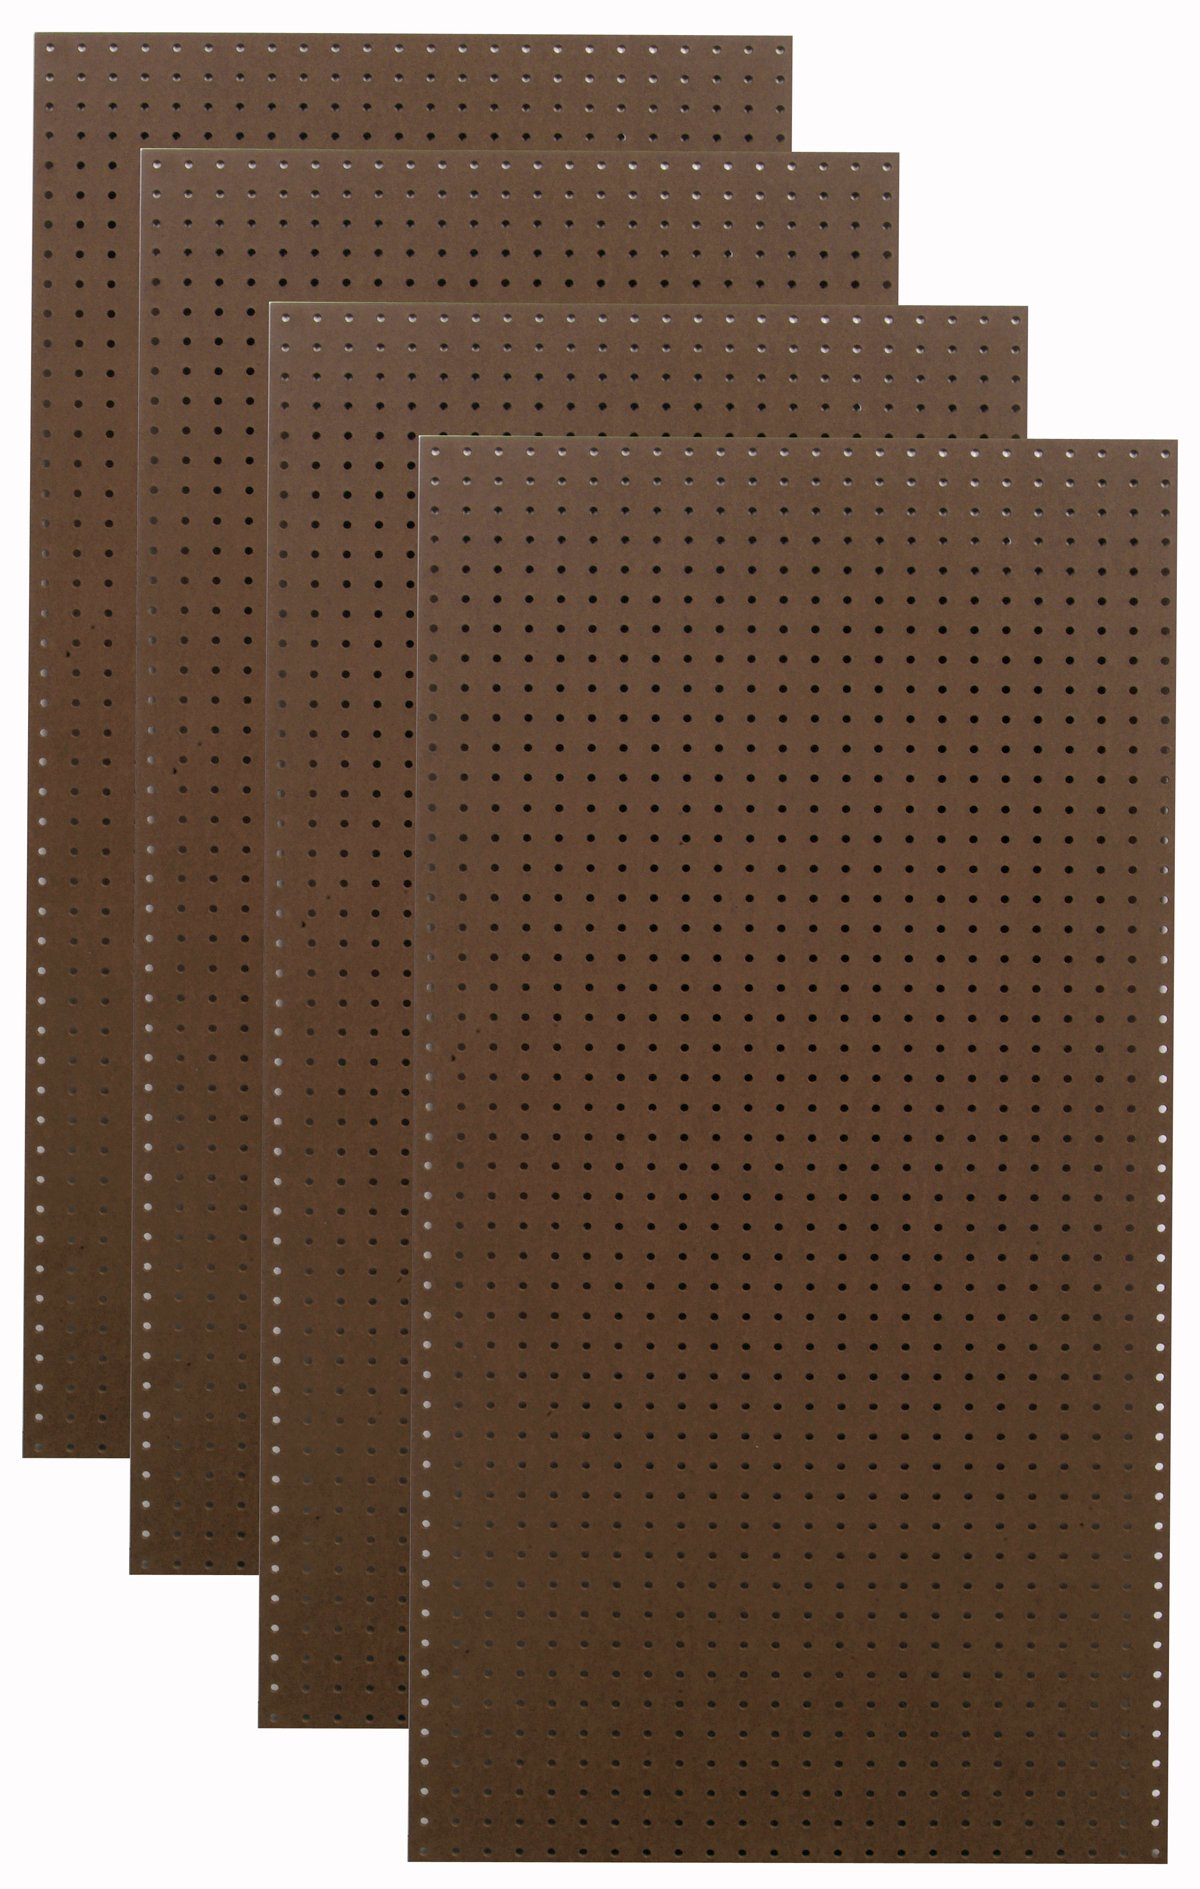 Tempered Wood Pegboard TPB-4BR 24-Inch W x 48-Inch H x 1/4-Inch D Heavy Duty Commercial Grade Round Hole Pegboards, Brown by Tempered Wood Pegboard (Image #1)